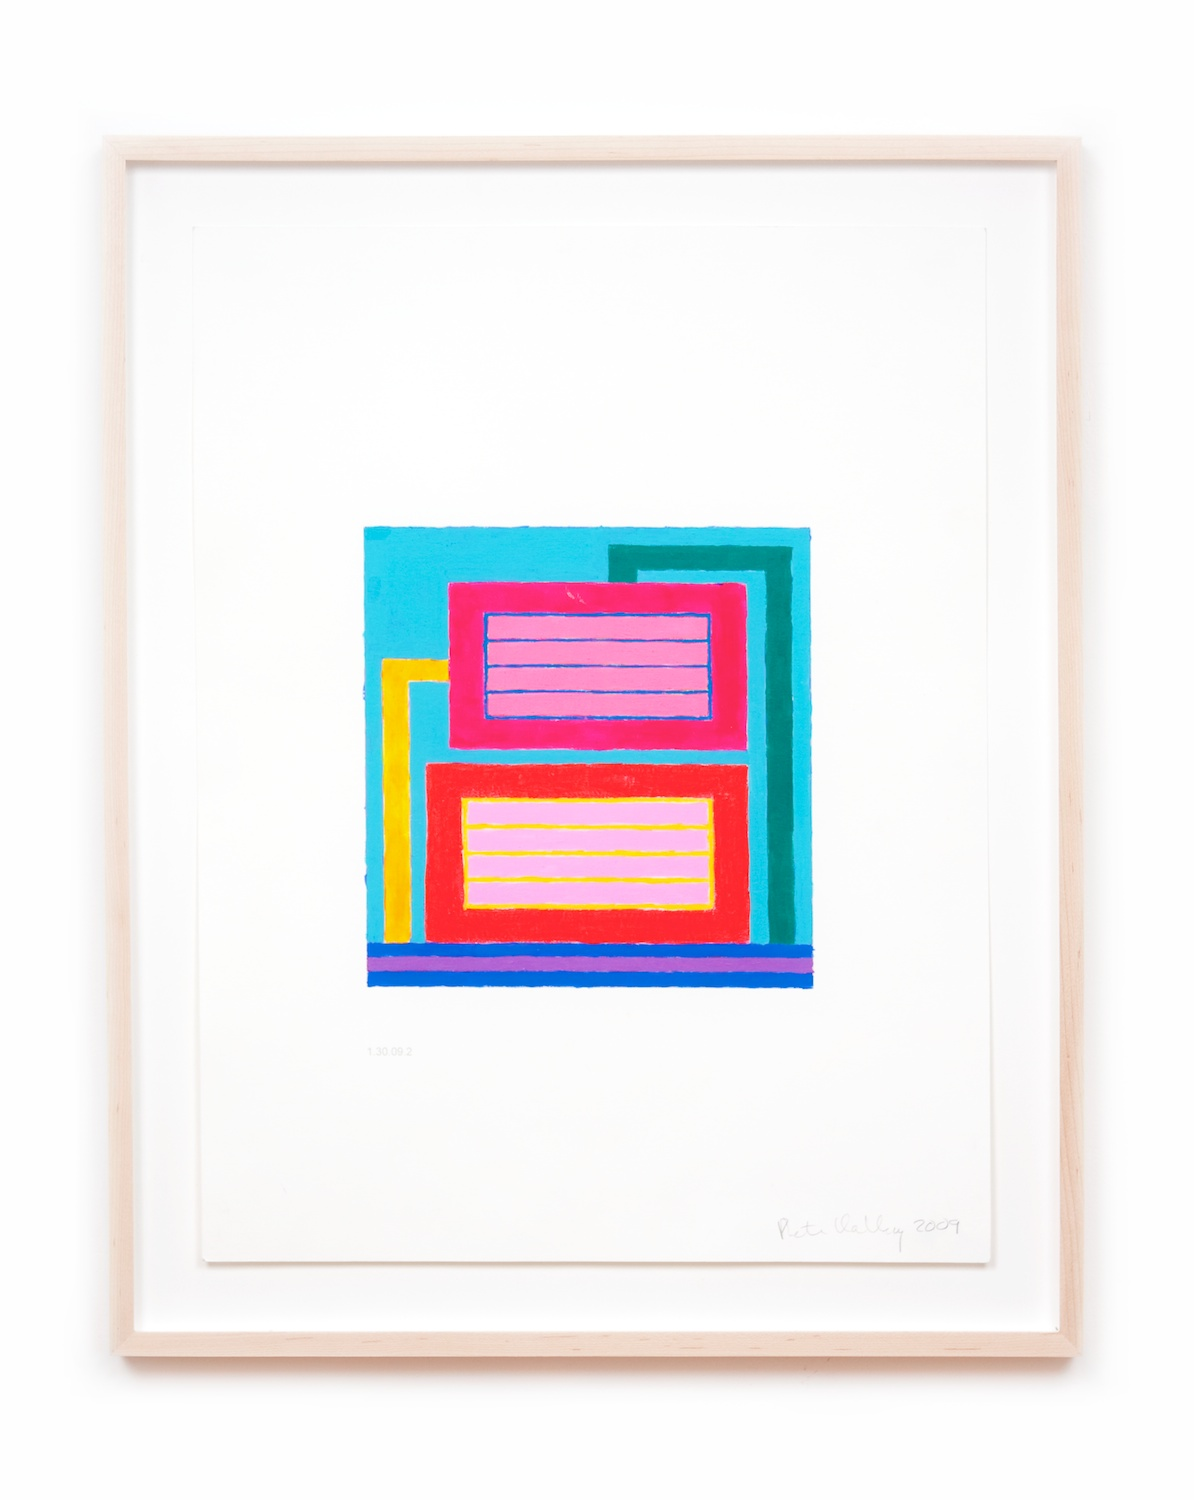 Peter Halley  Untitled  2009 Acrylic and Day-glo acrylic on computer-printed paper 21h x 16w in PH001